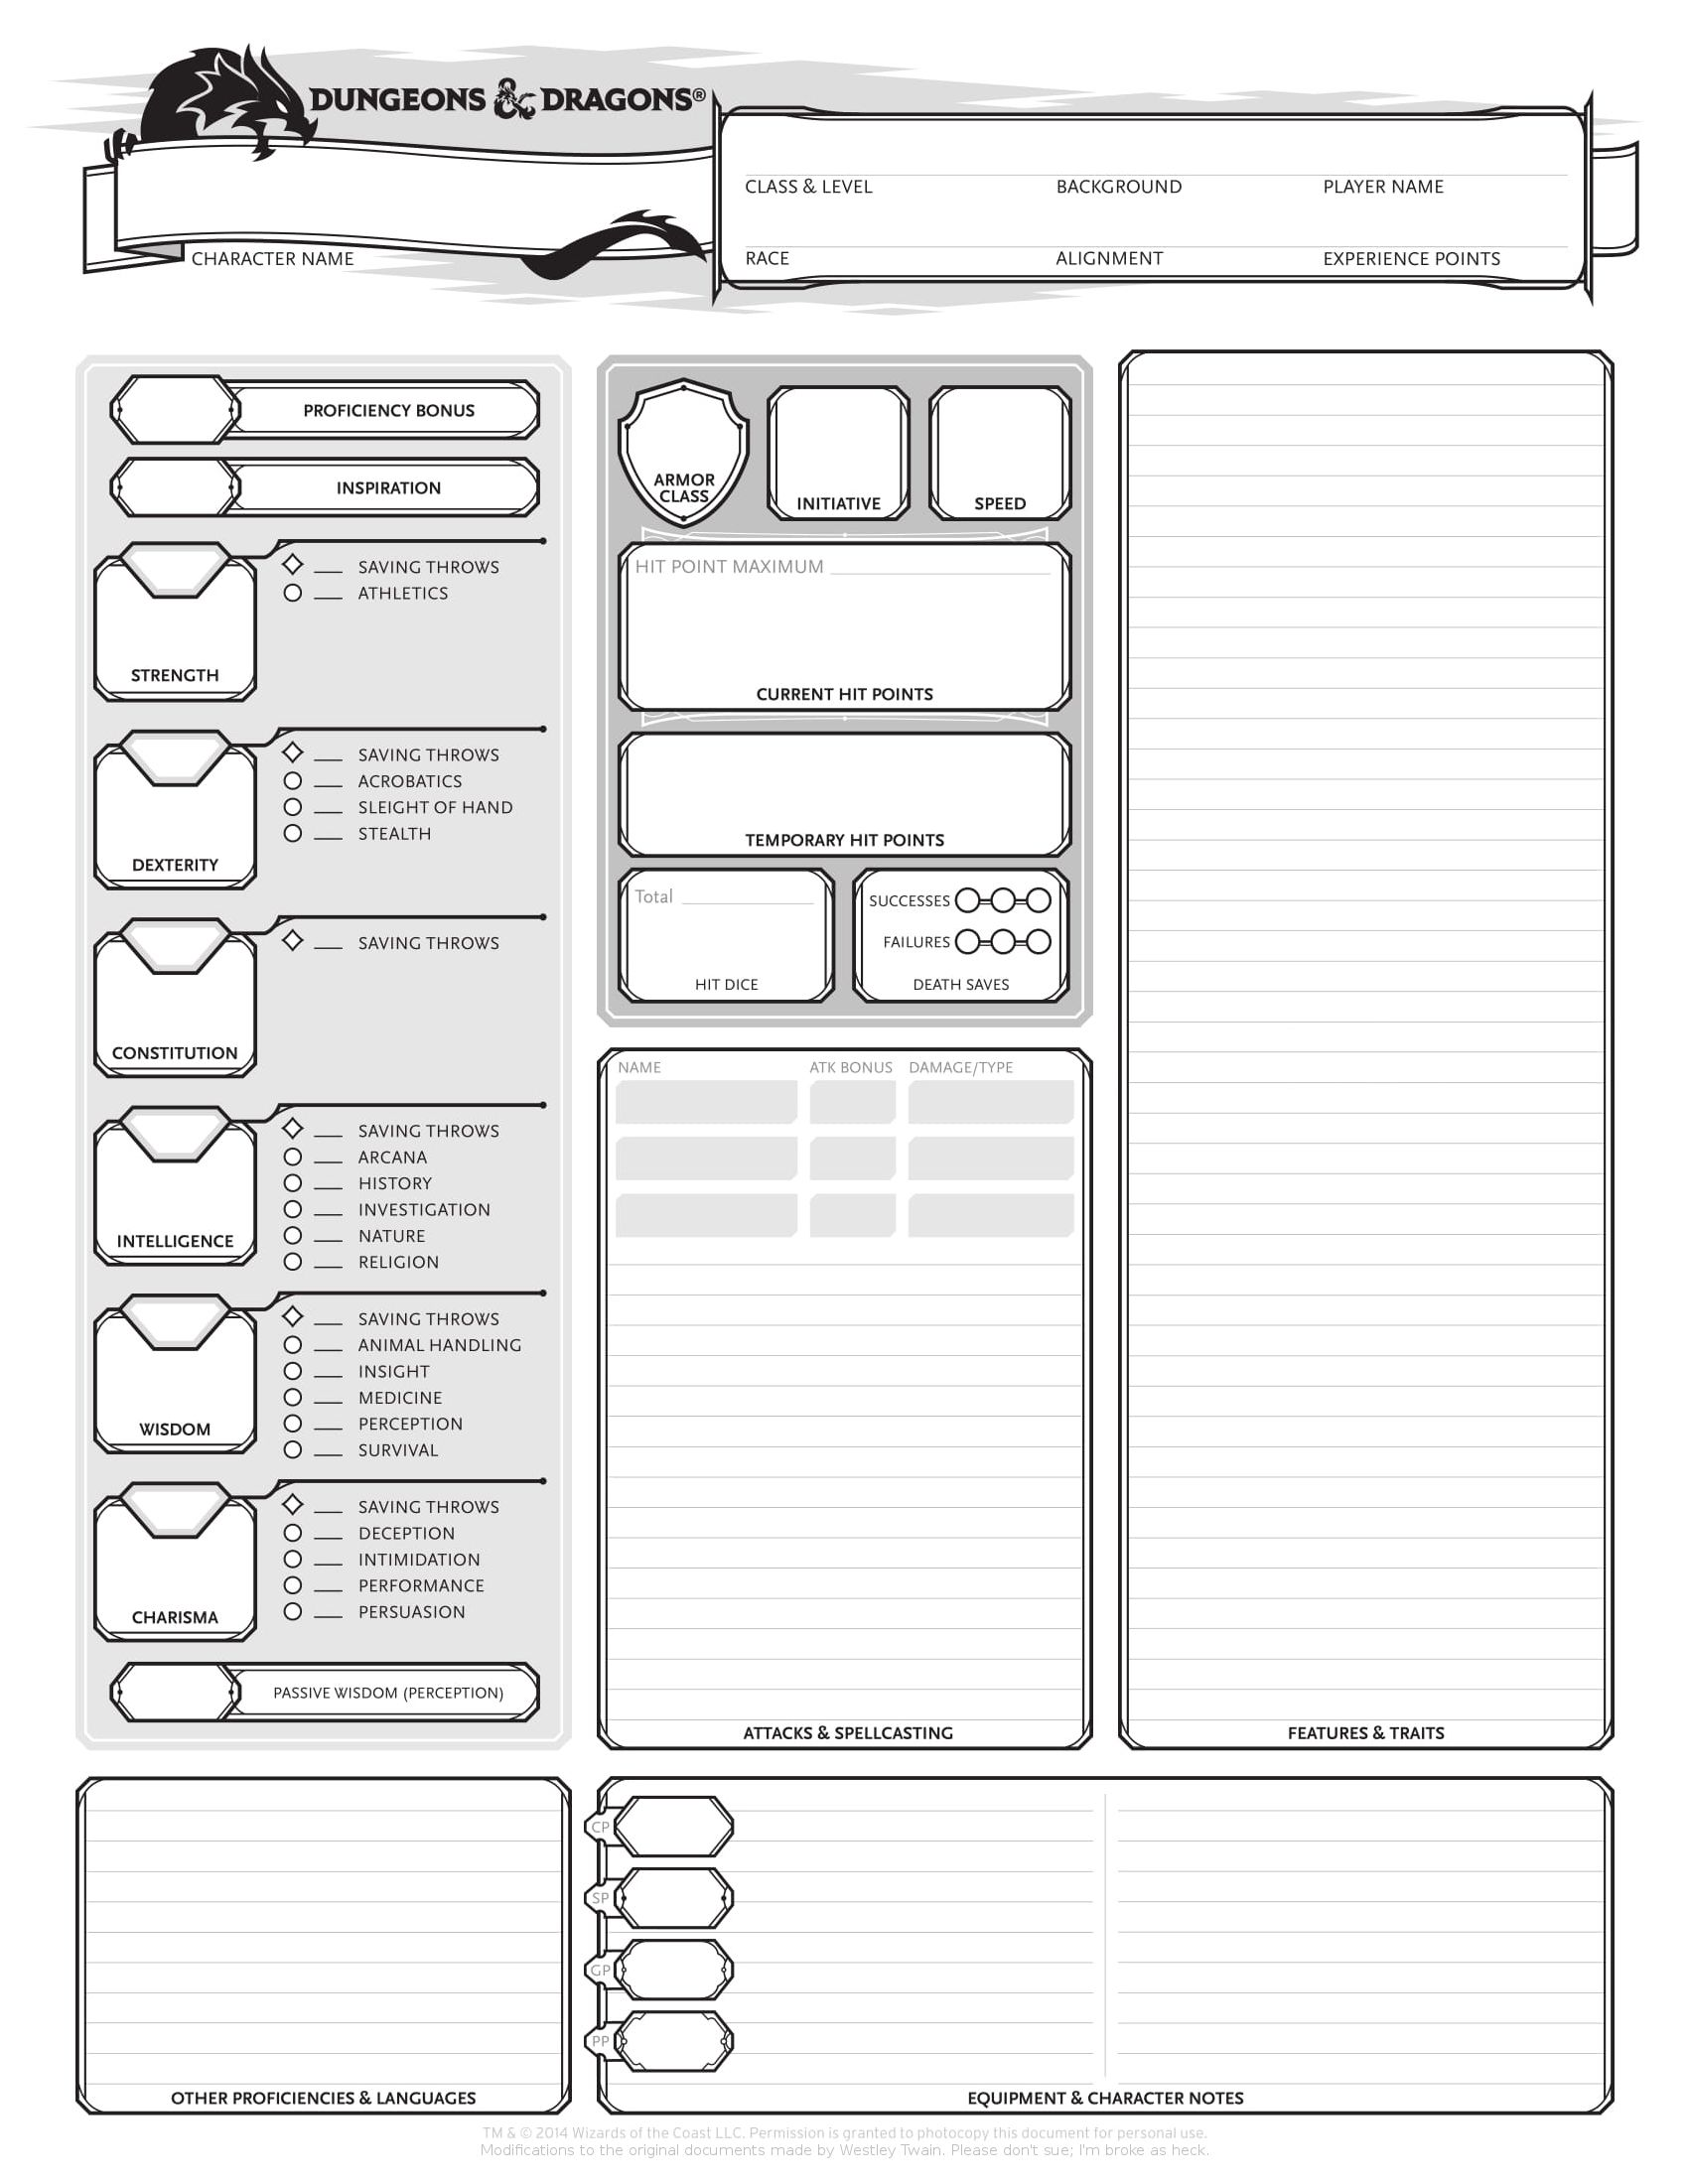 oc my consider upon personalized initial web of persona sheet dnd character creation Resume D&d Character Sheet Resume